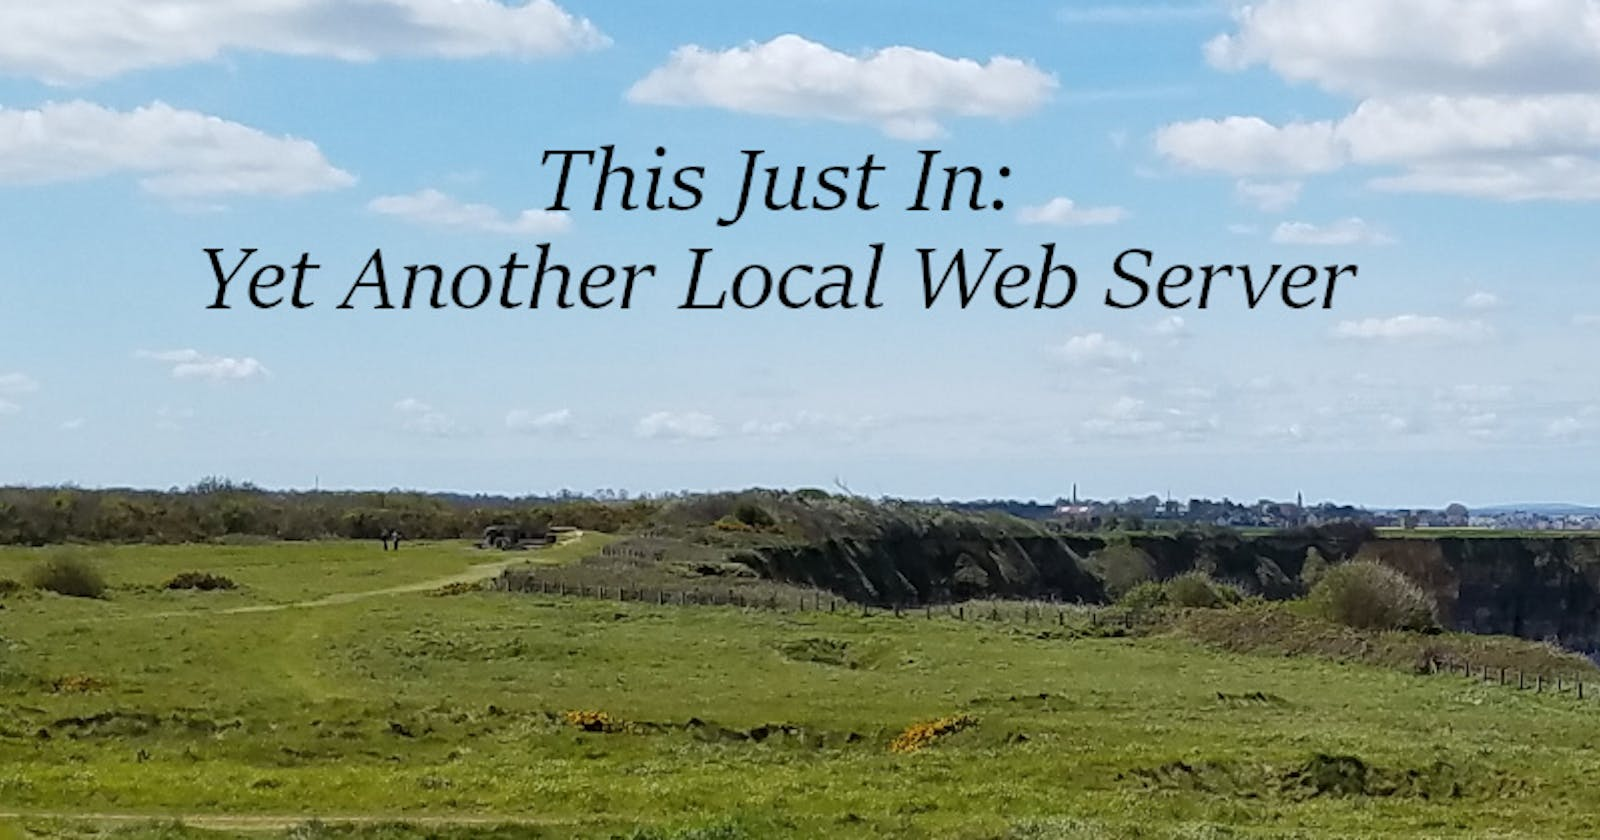 This Just In: Yet Another Local Web Server